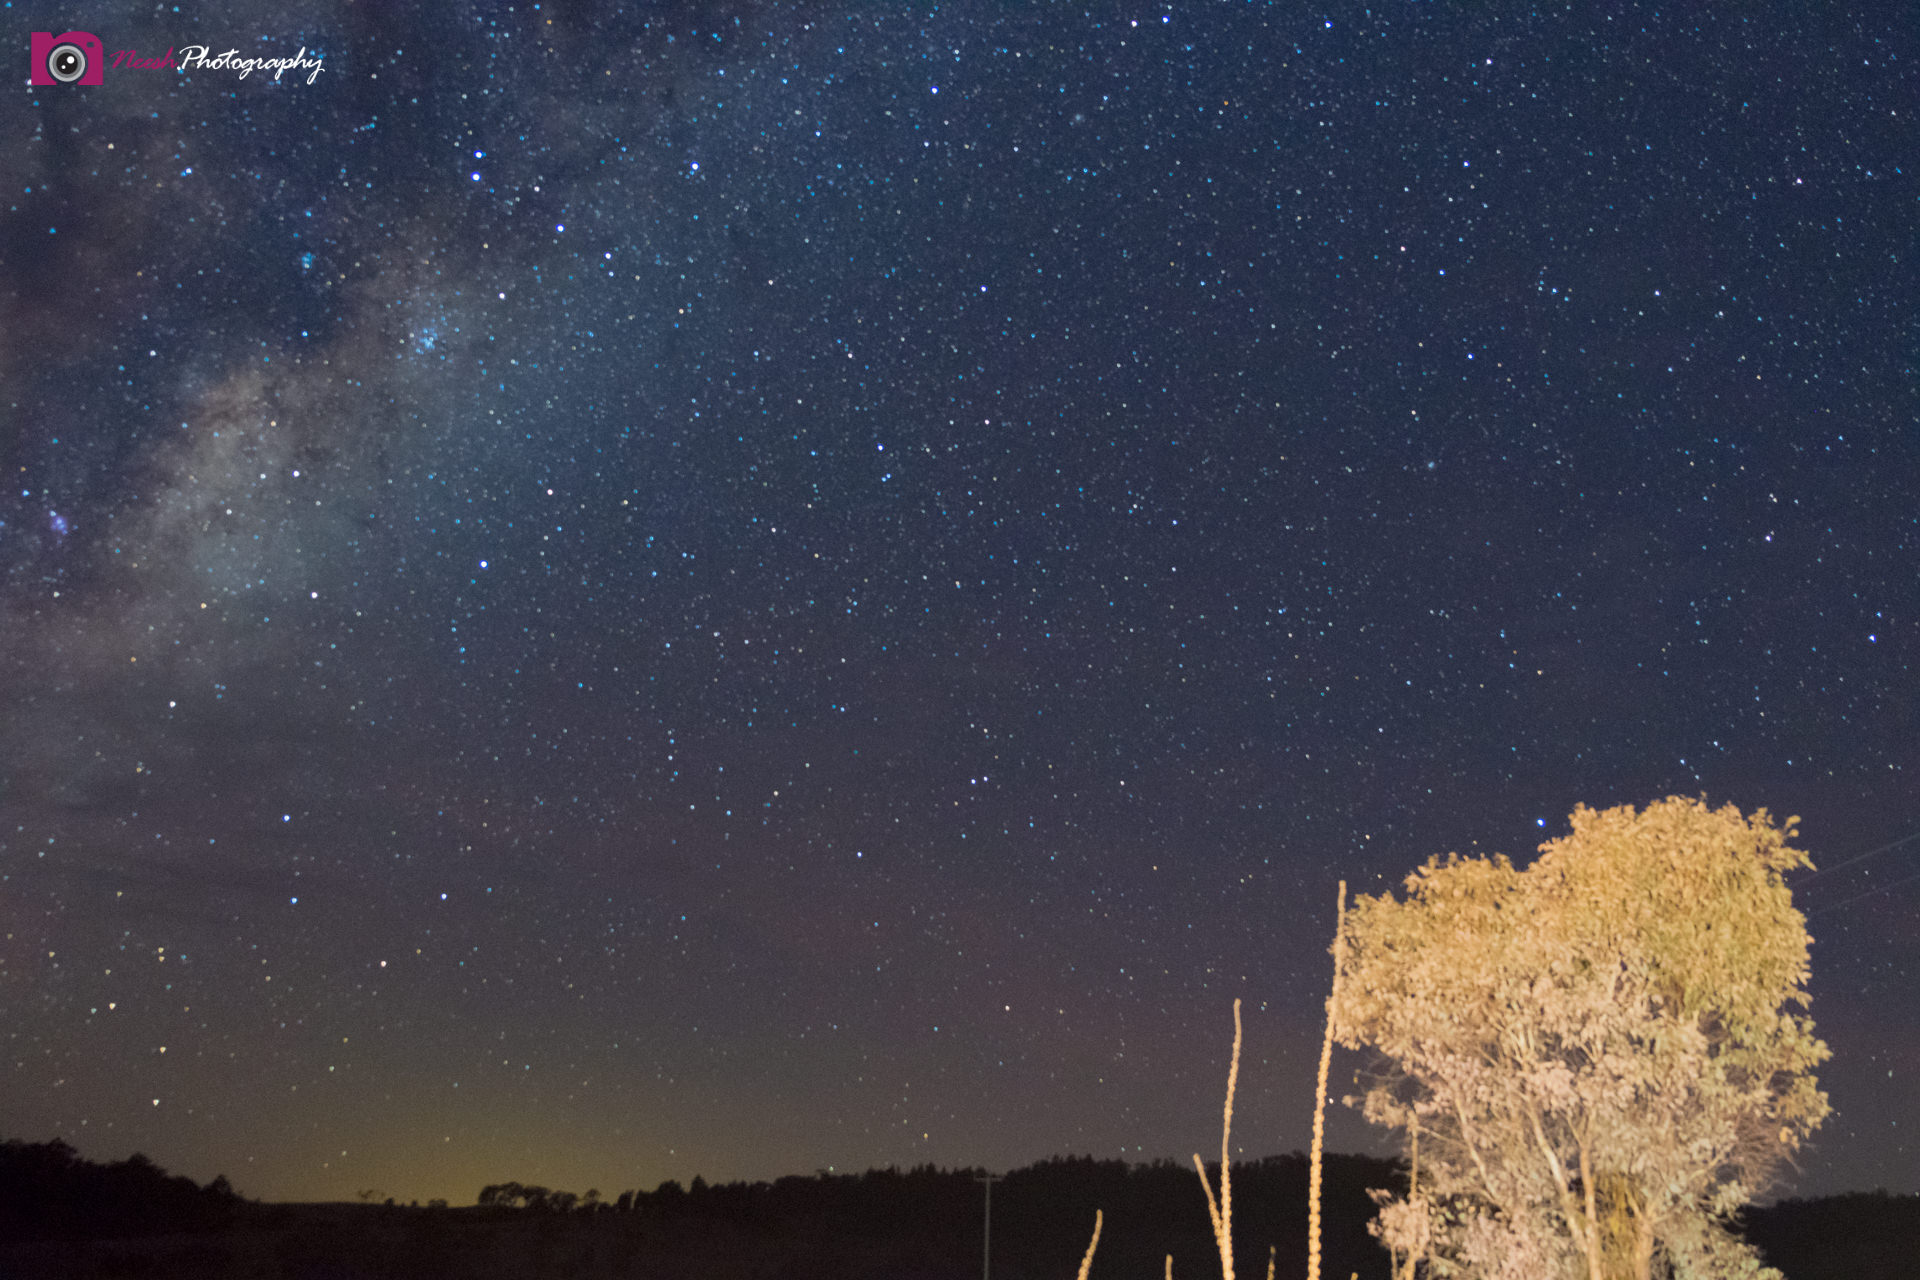 Astrophotography Challenge - Milky Way & Tree Light Painting Fail